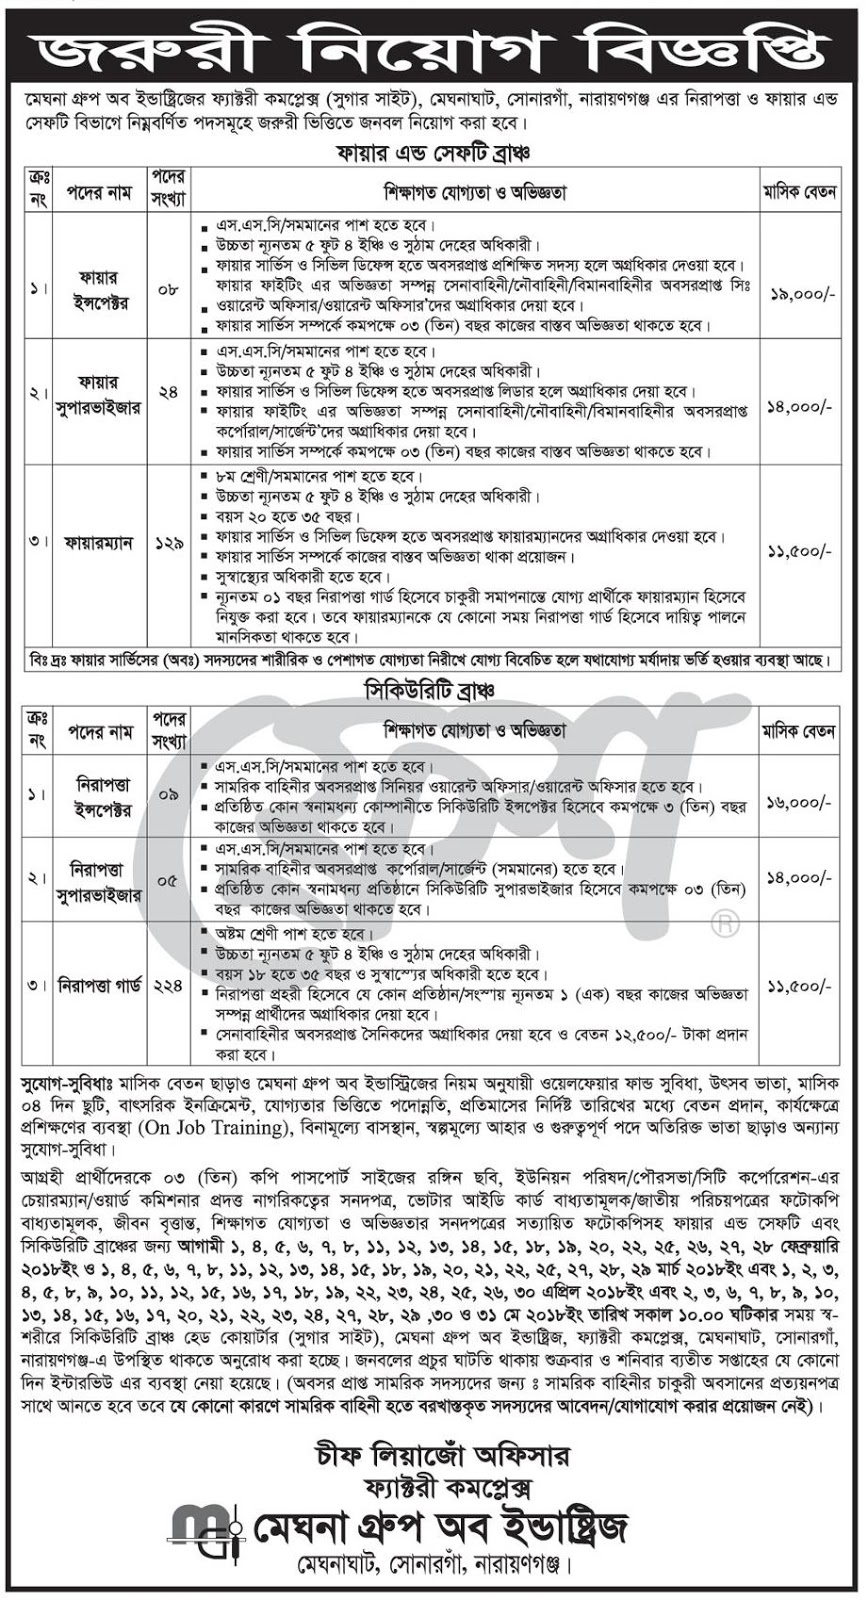 Meghna Group of Industries Security Section Job Circular 2018